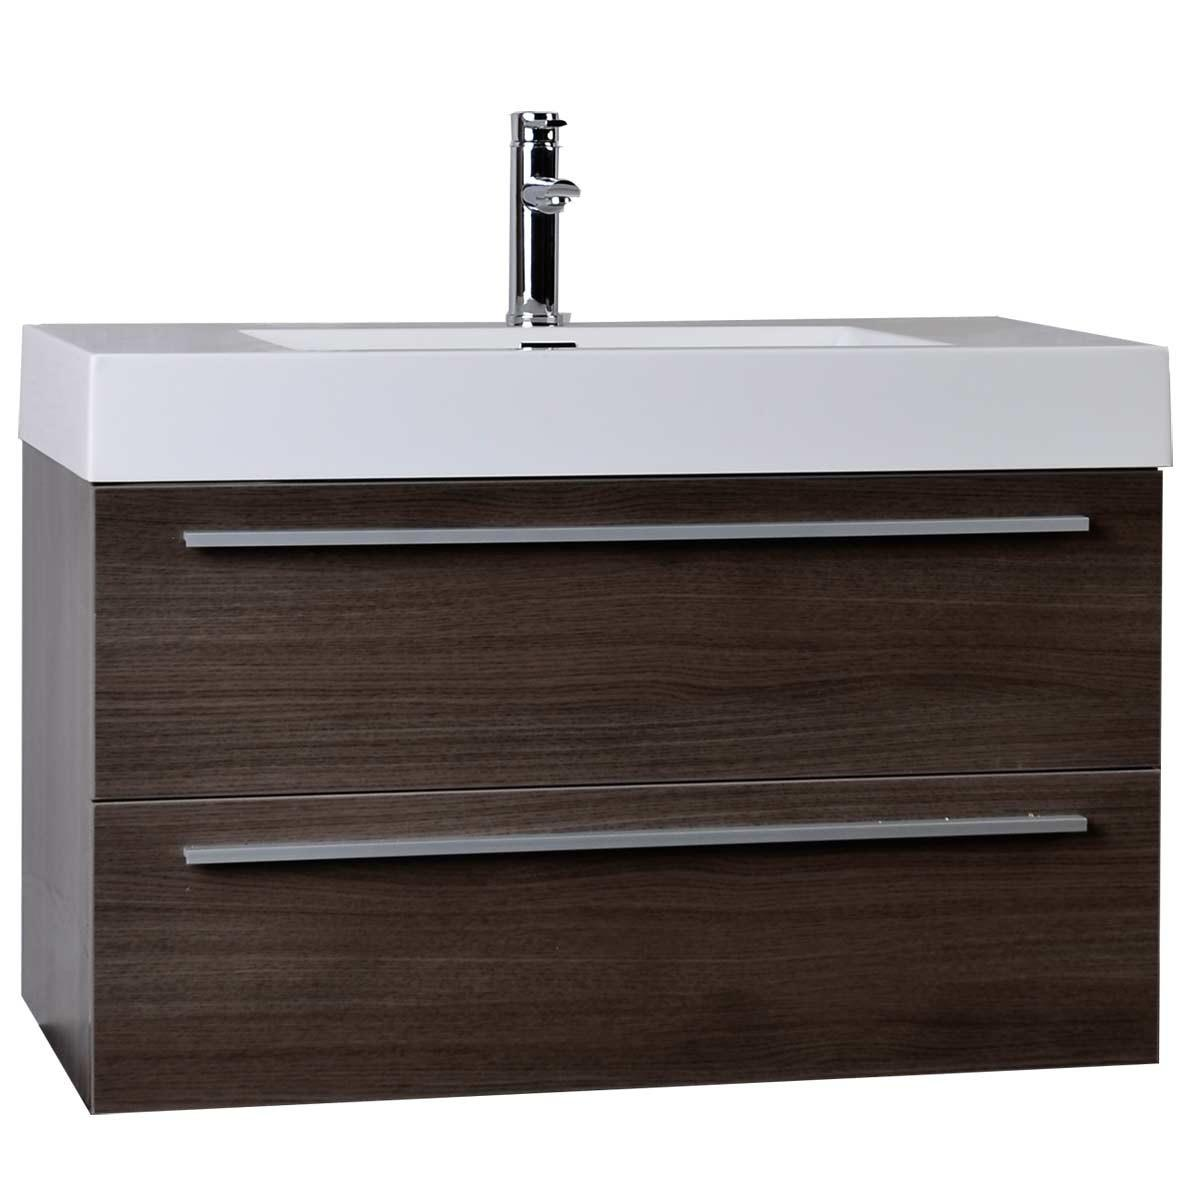 Modern Bathroom Vanity Grey Oak Wall Mount